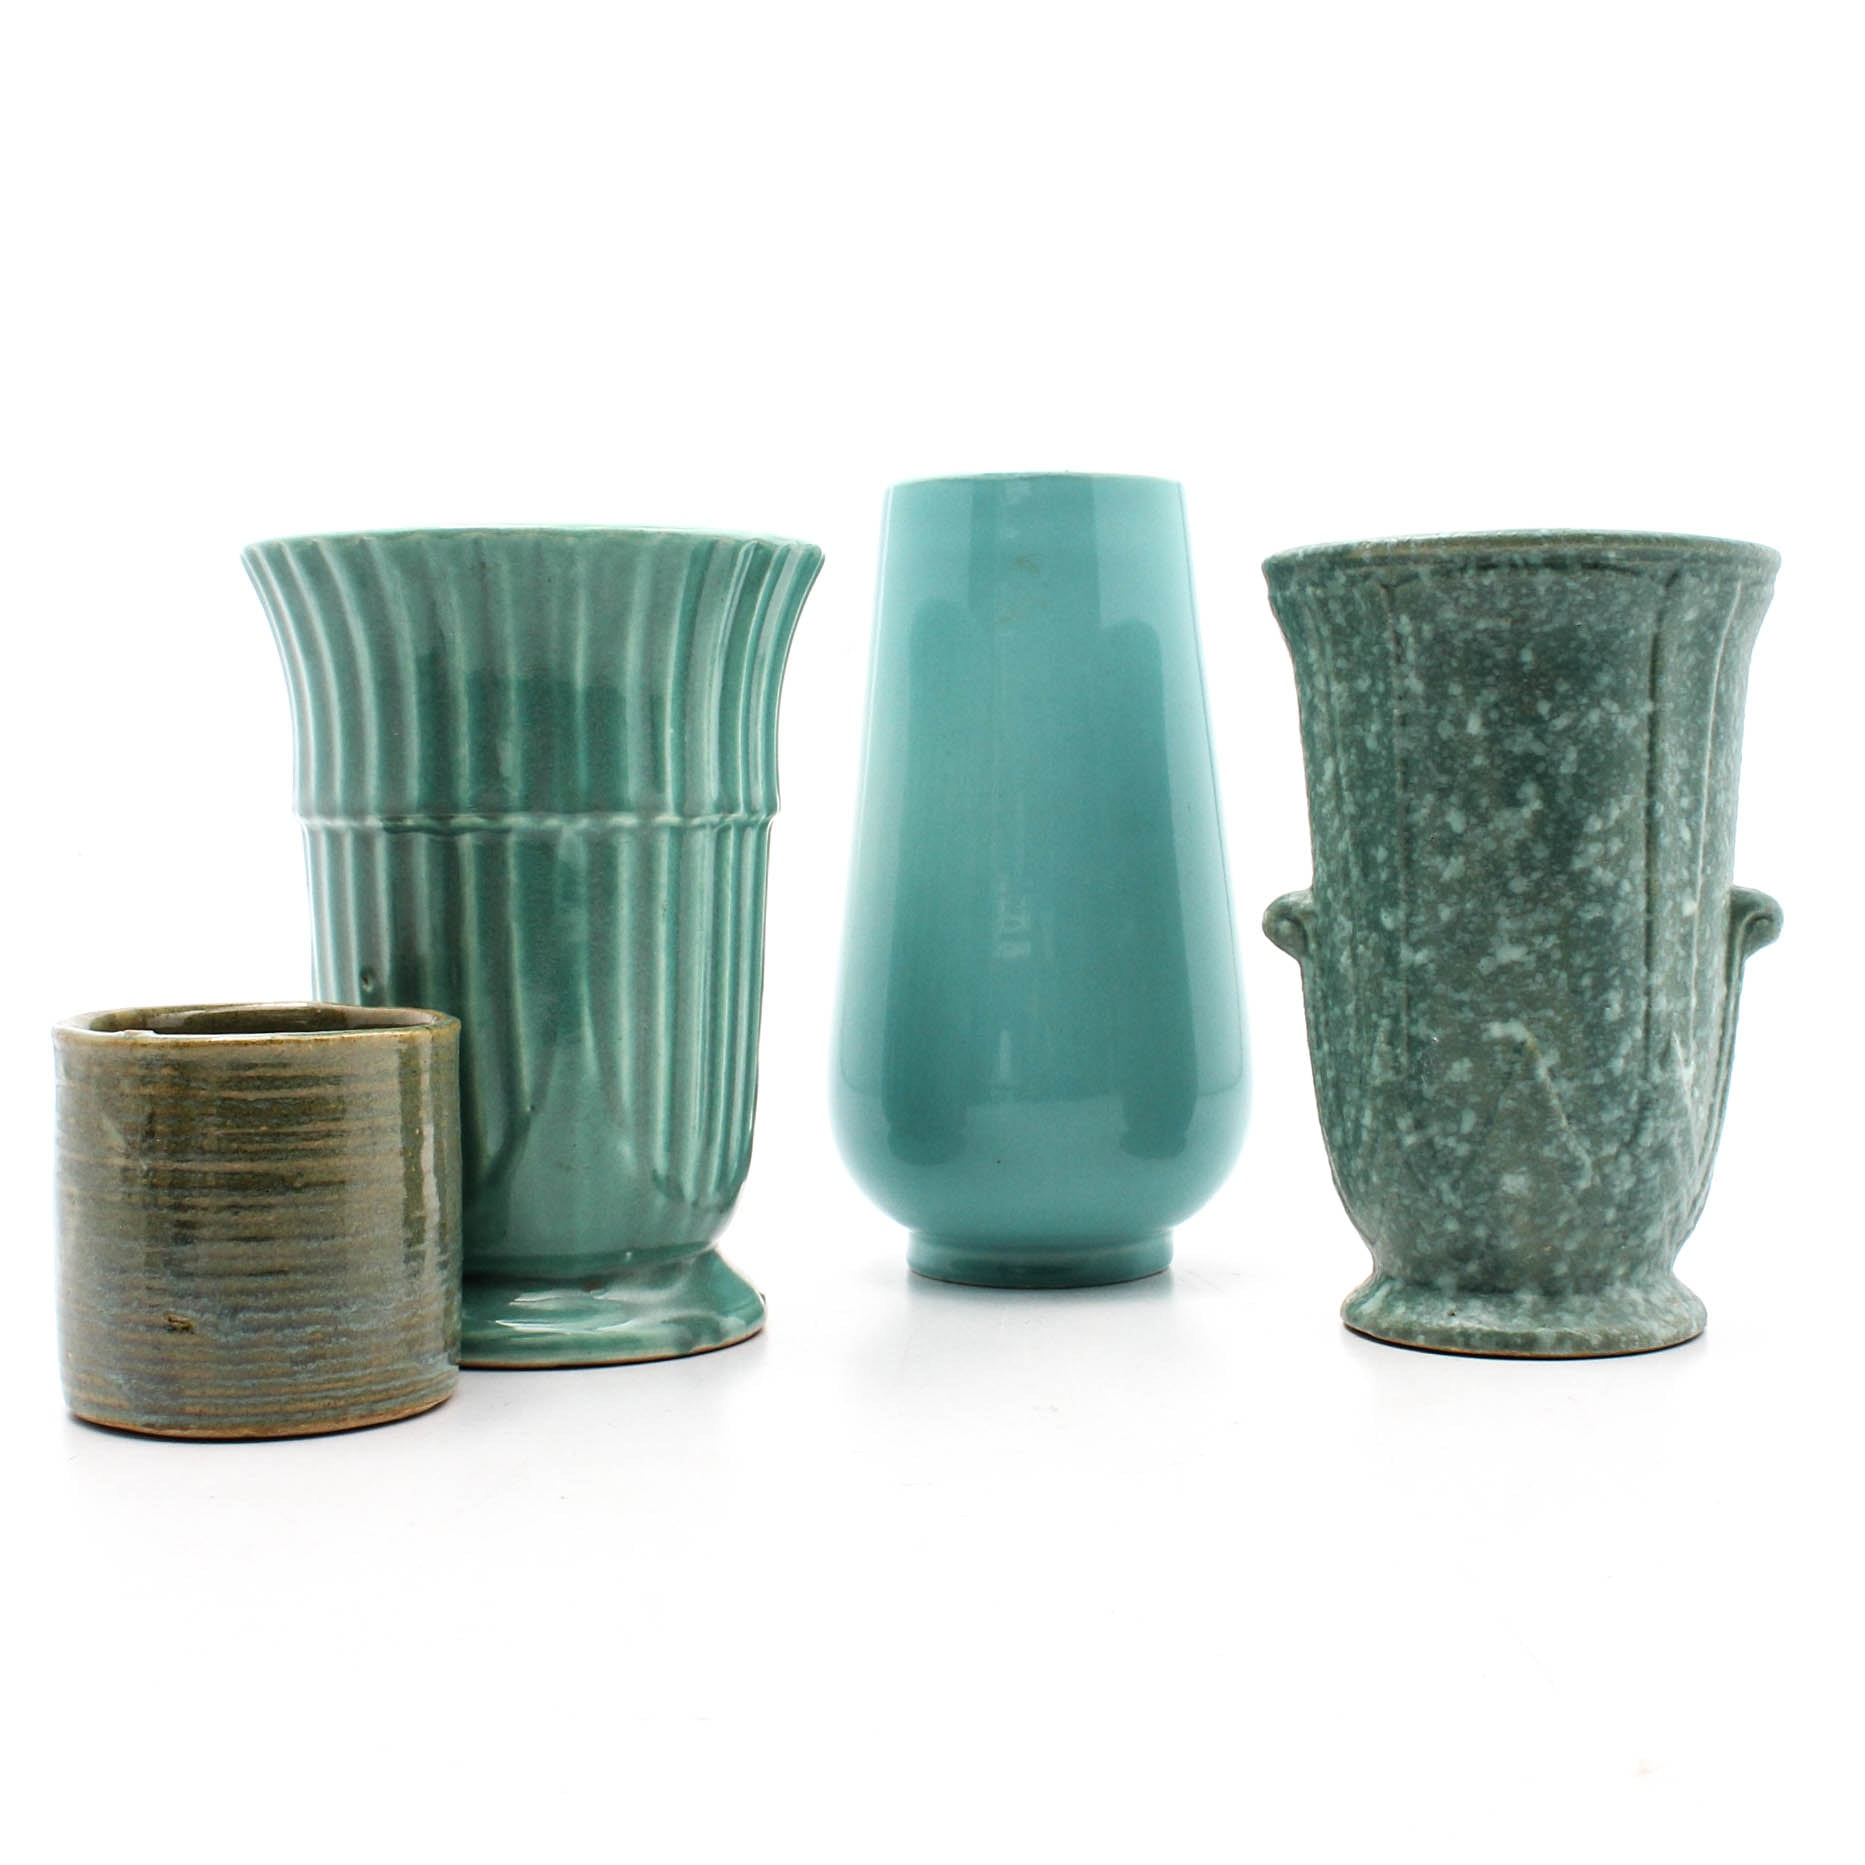 Decorative Turquoise Colored Vases